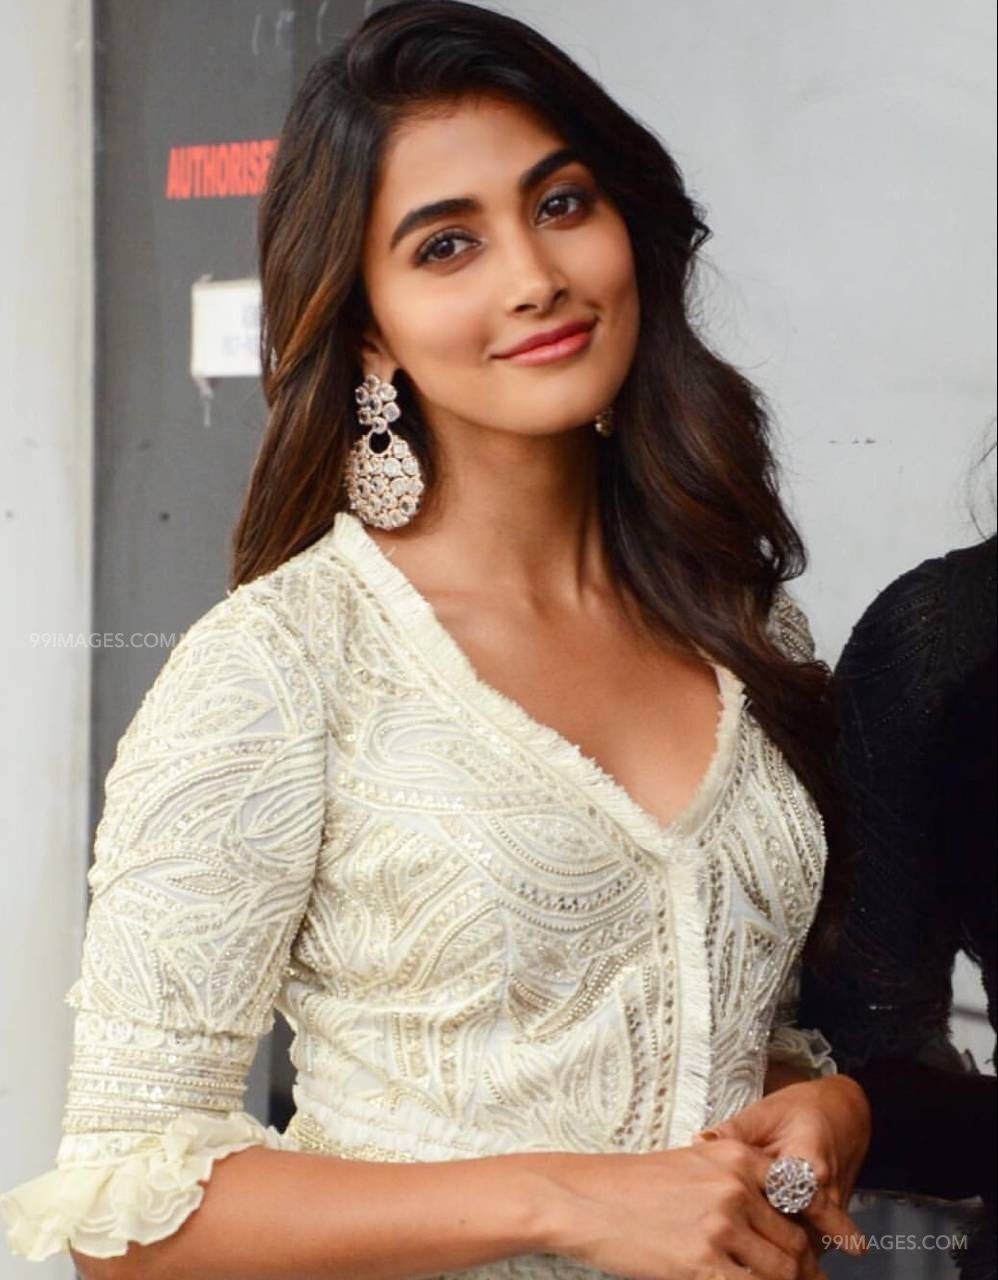 Pooja Hegde Hot HD Photos & Wallpapers for mobile (1080p) (43385) - Pooja Hegde